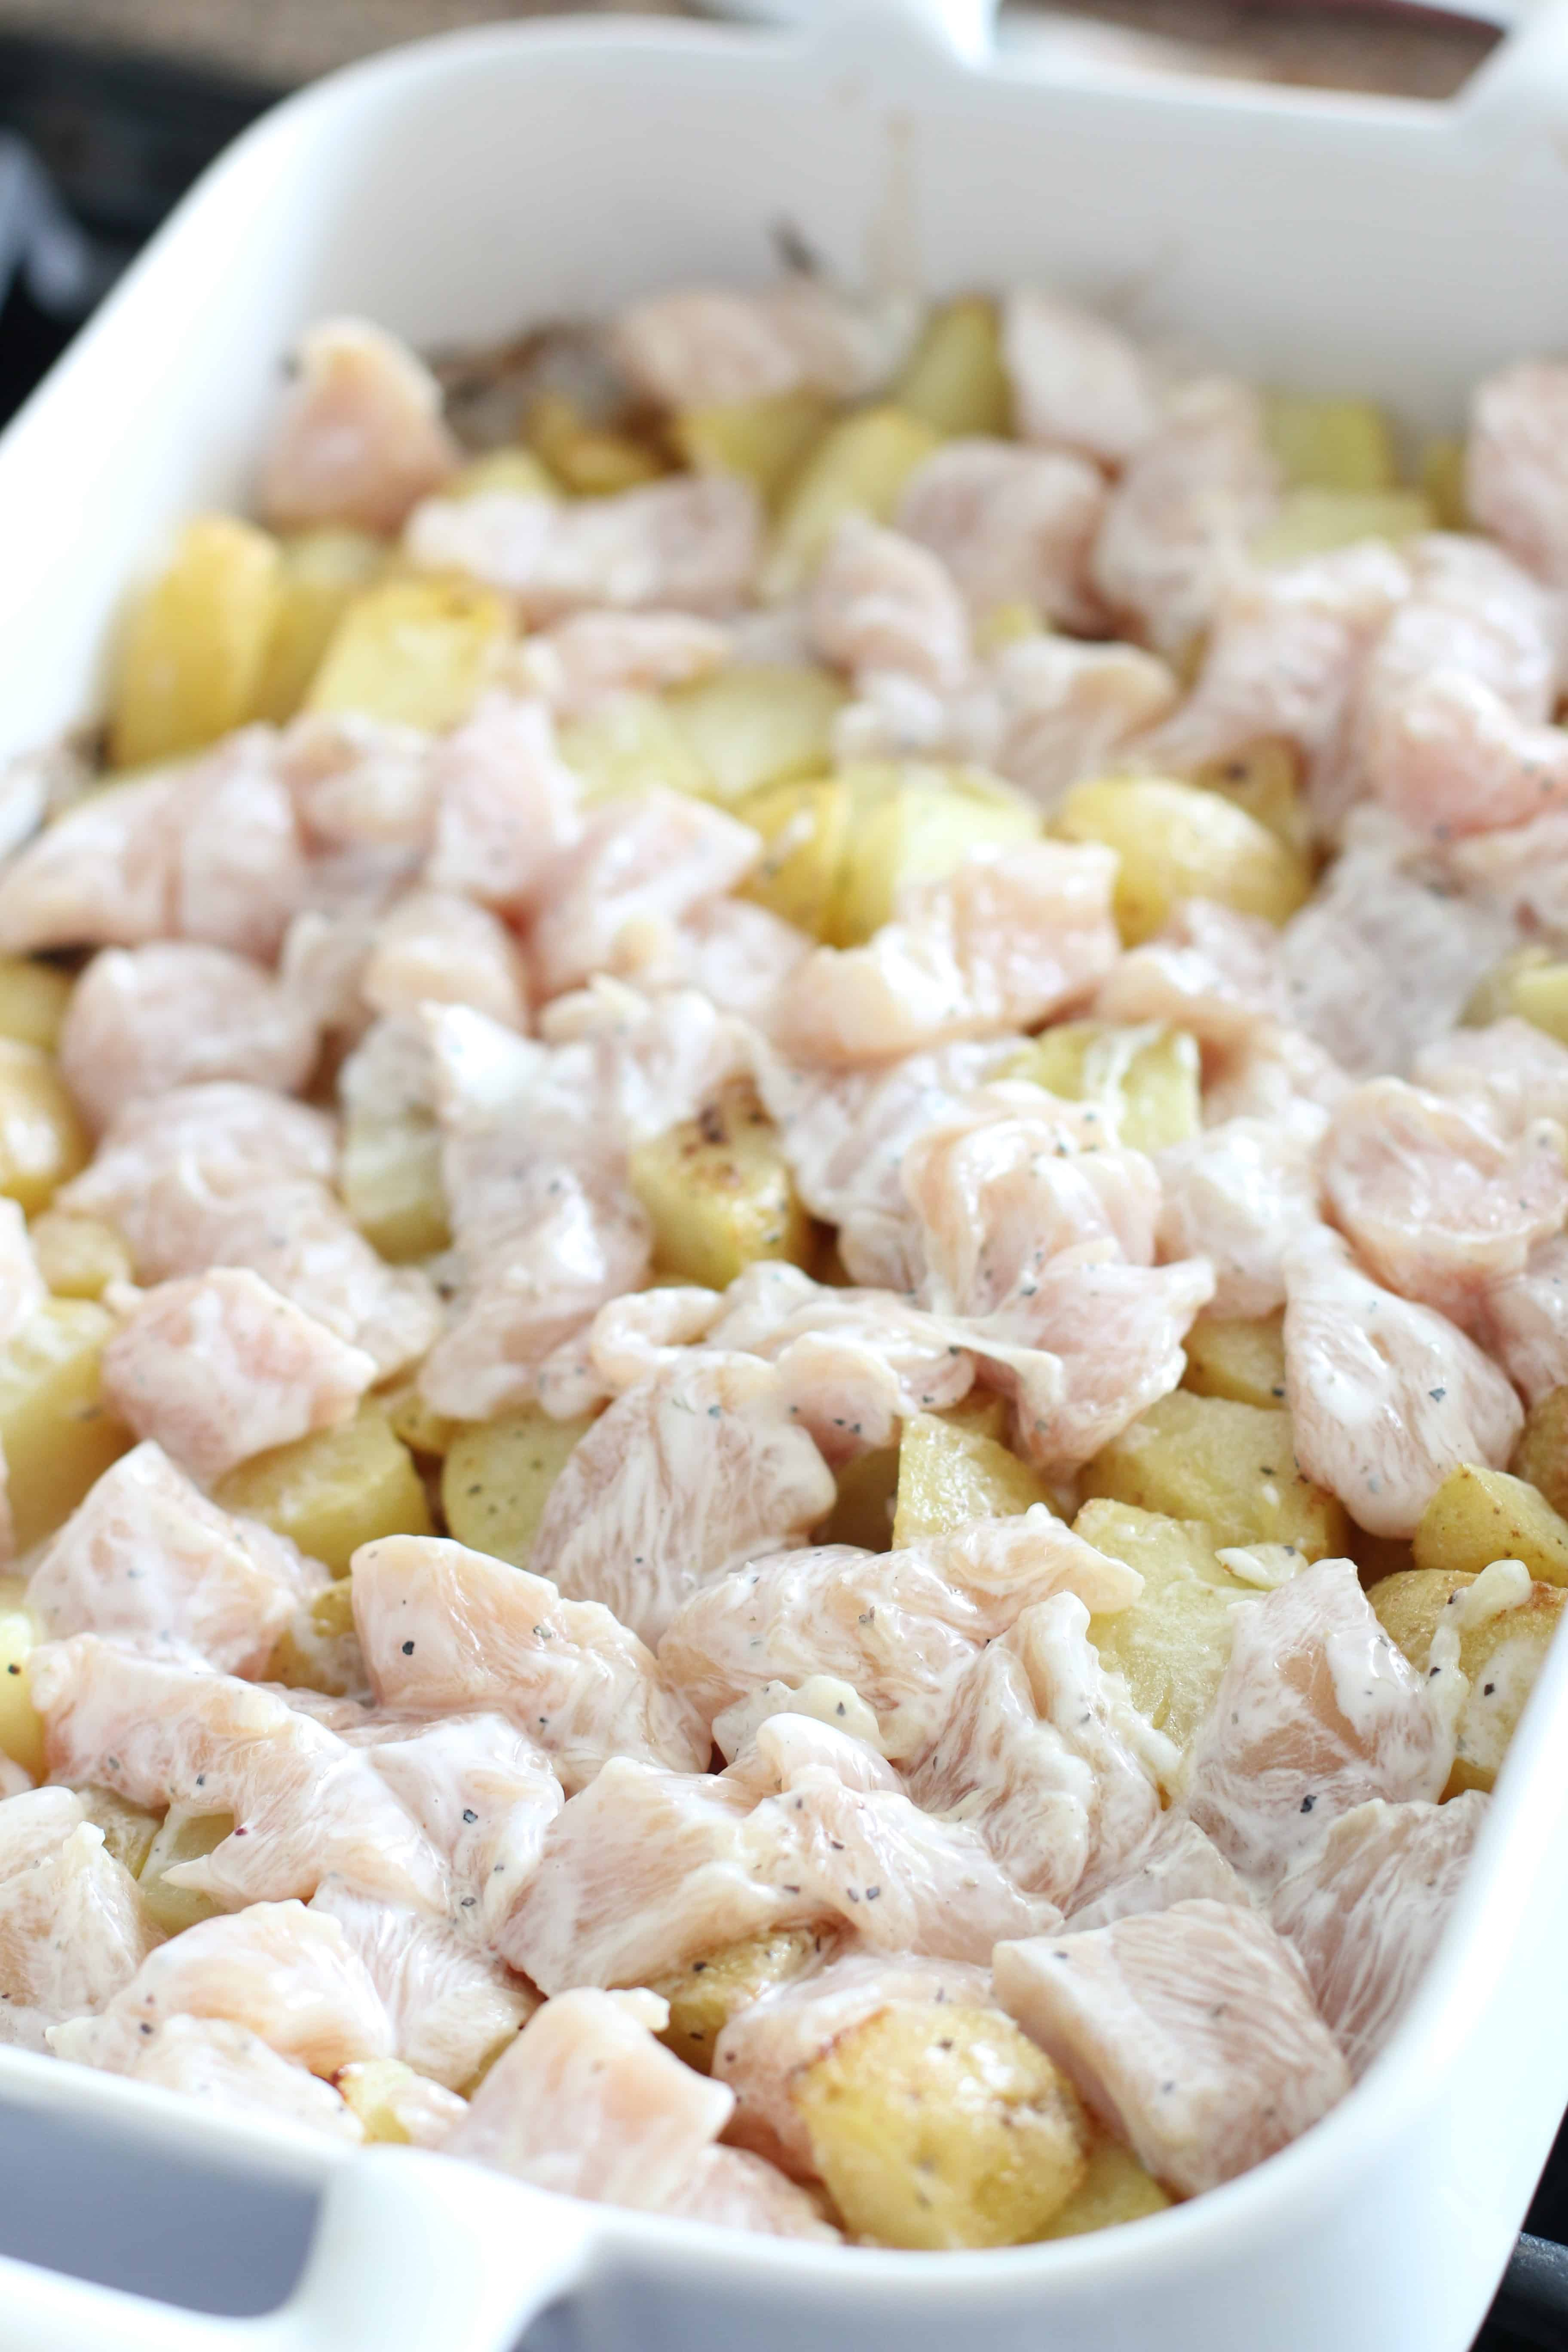 ranch coated chicken and potatoes in a baking dish ready to be cooked.